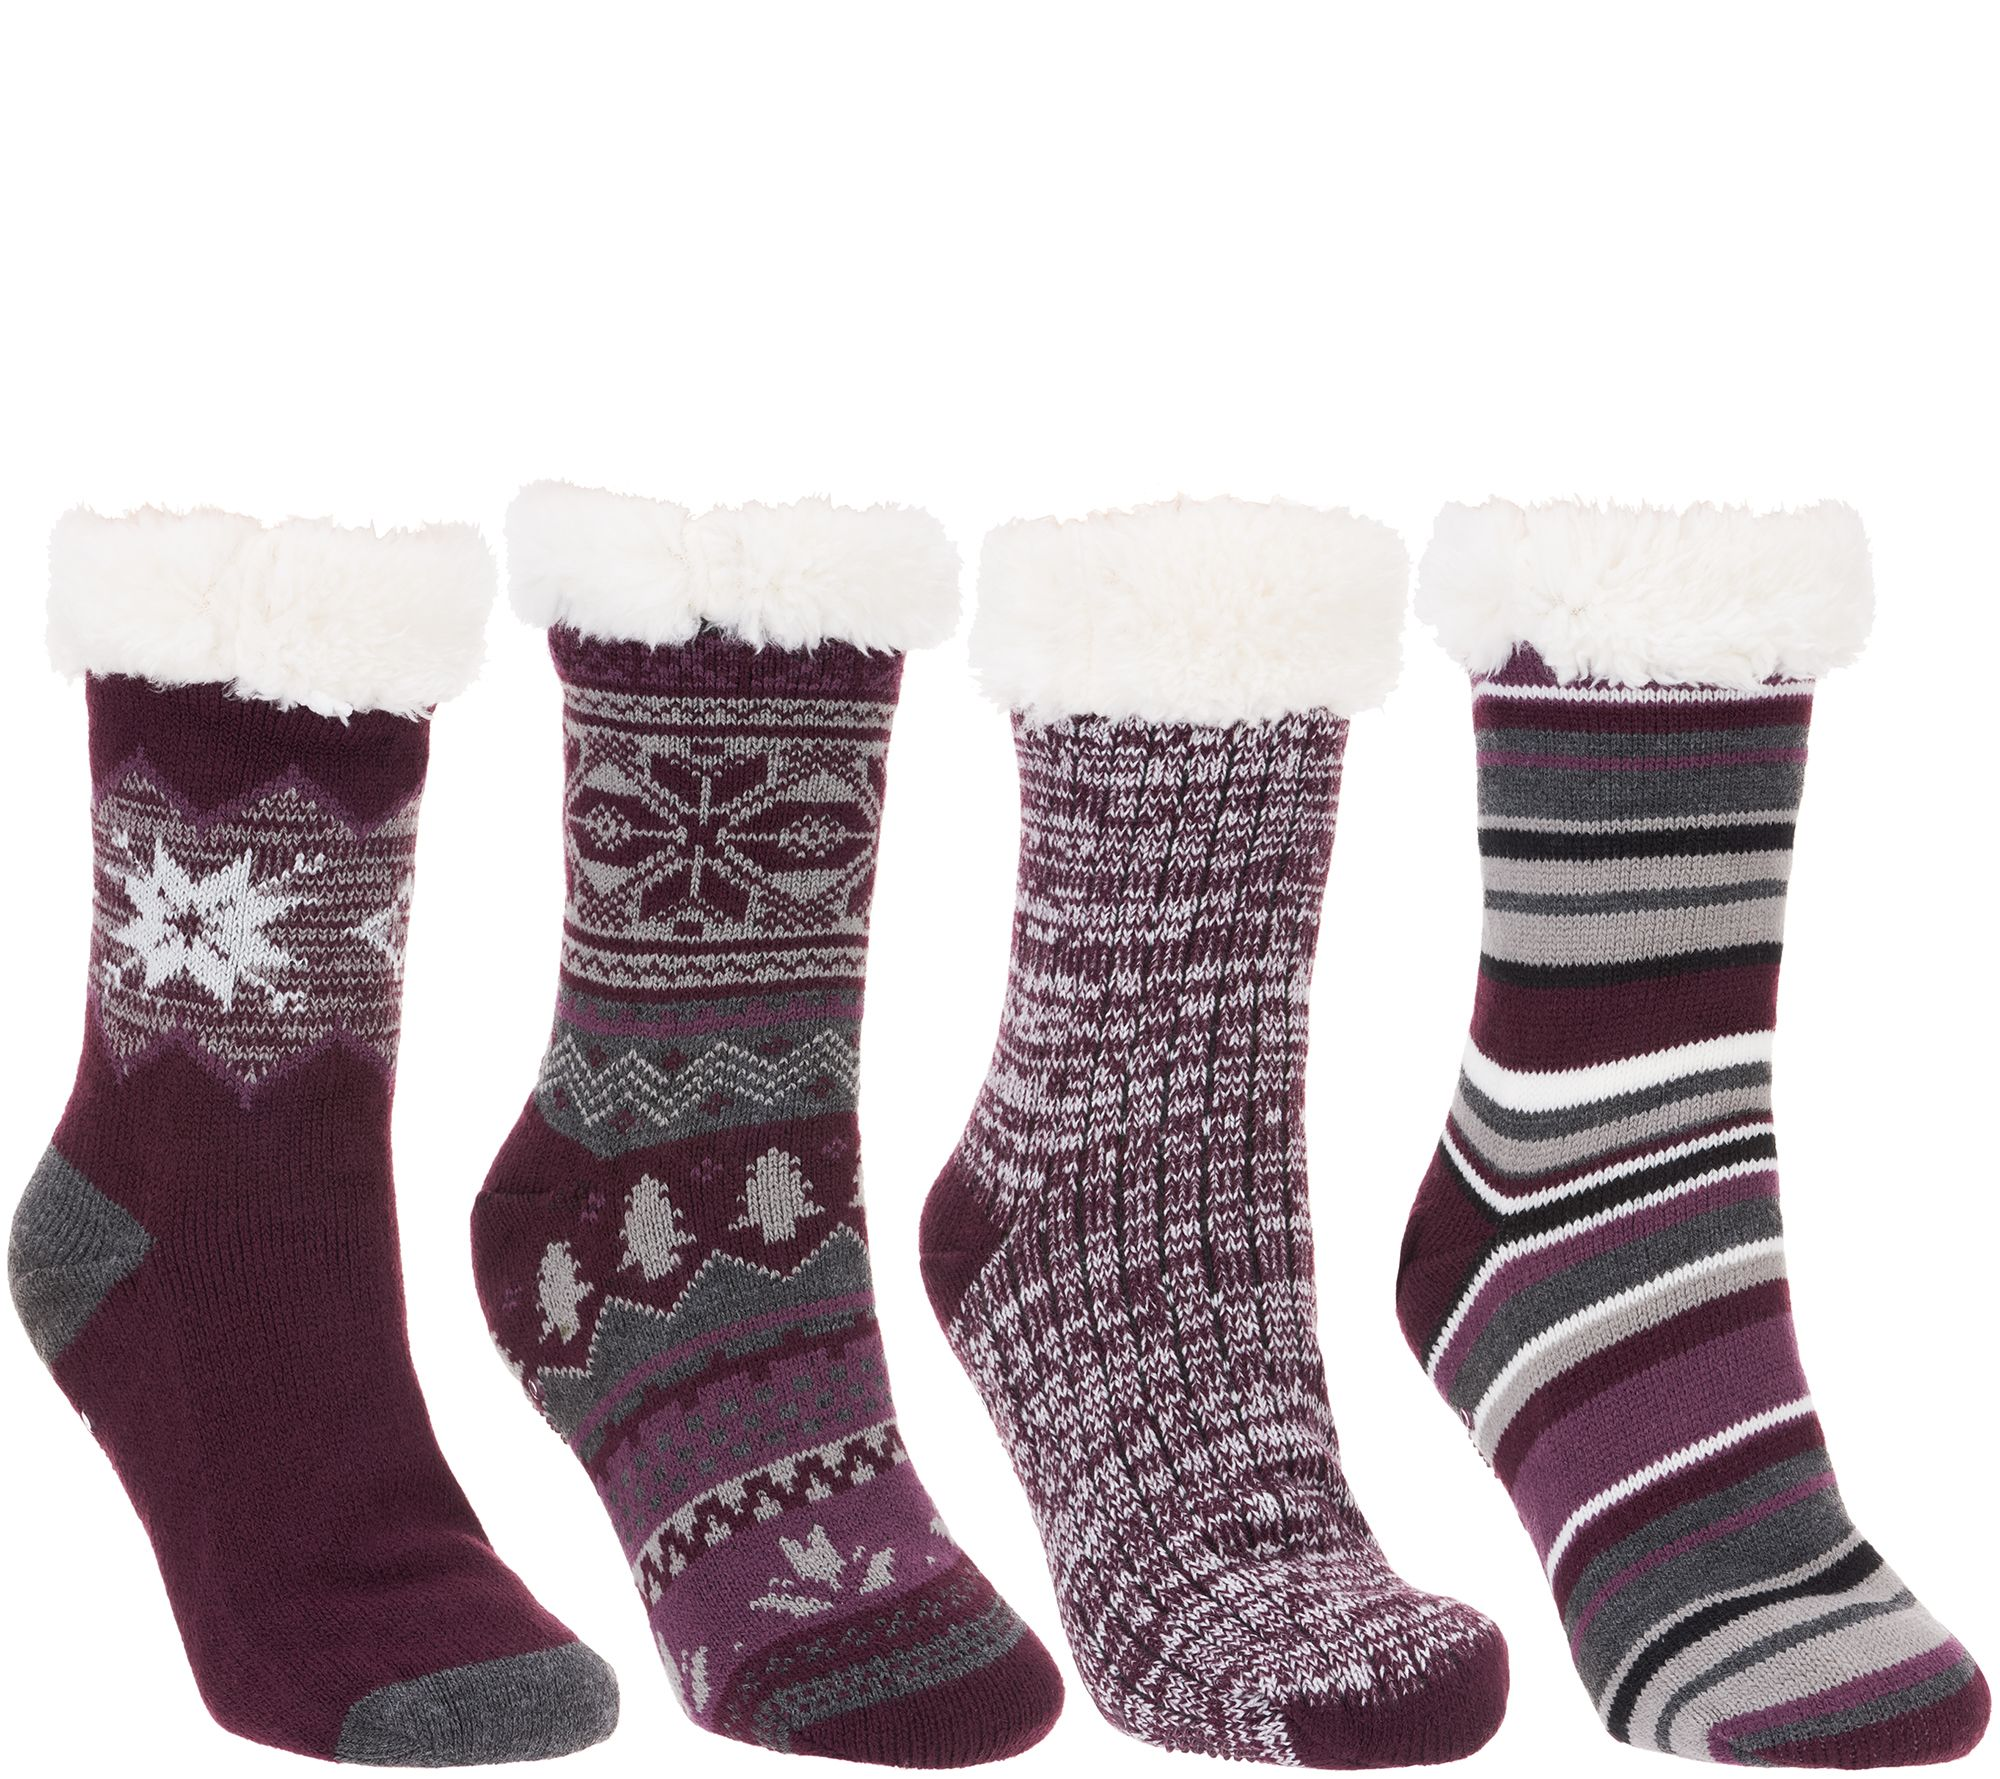 ca62132ccd74 MUK LUKS Jojoba Infused Faux Shearling Cabin Socks Set of 4 Pairs - Page 1  — QVC.com